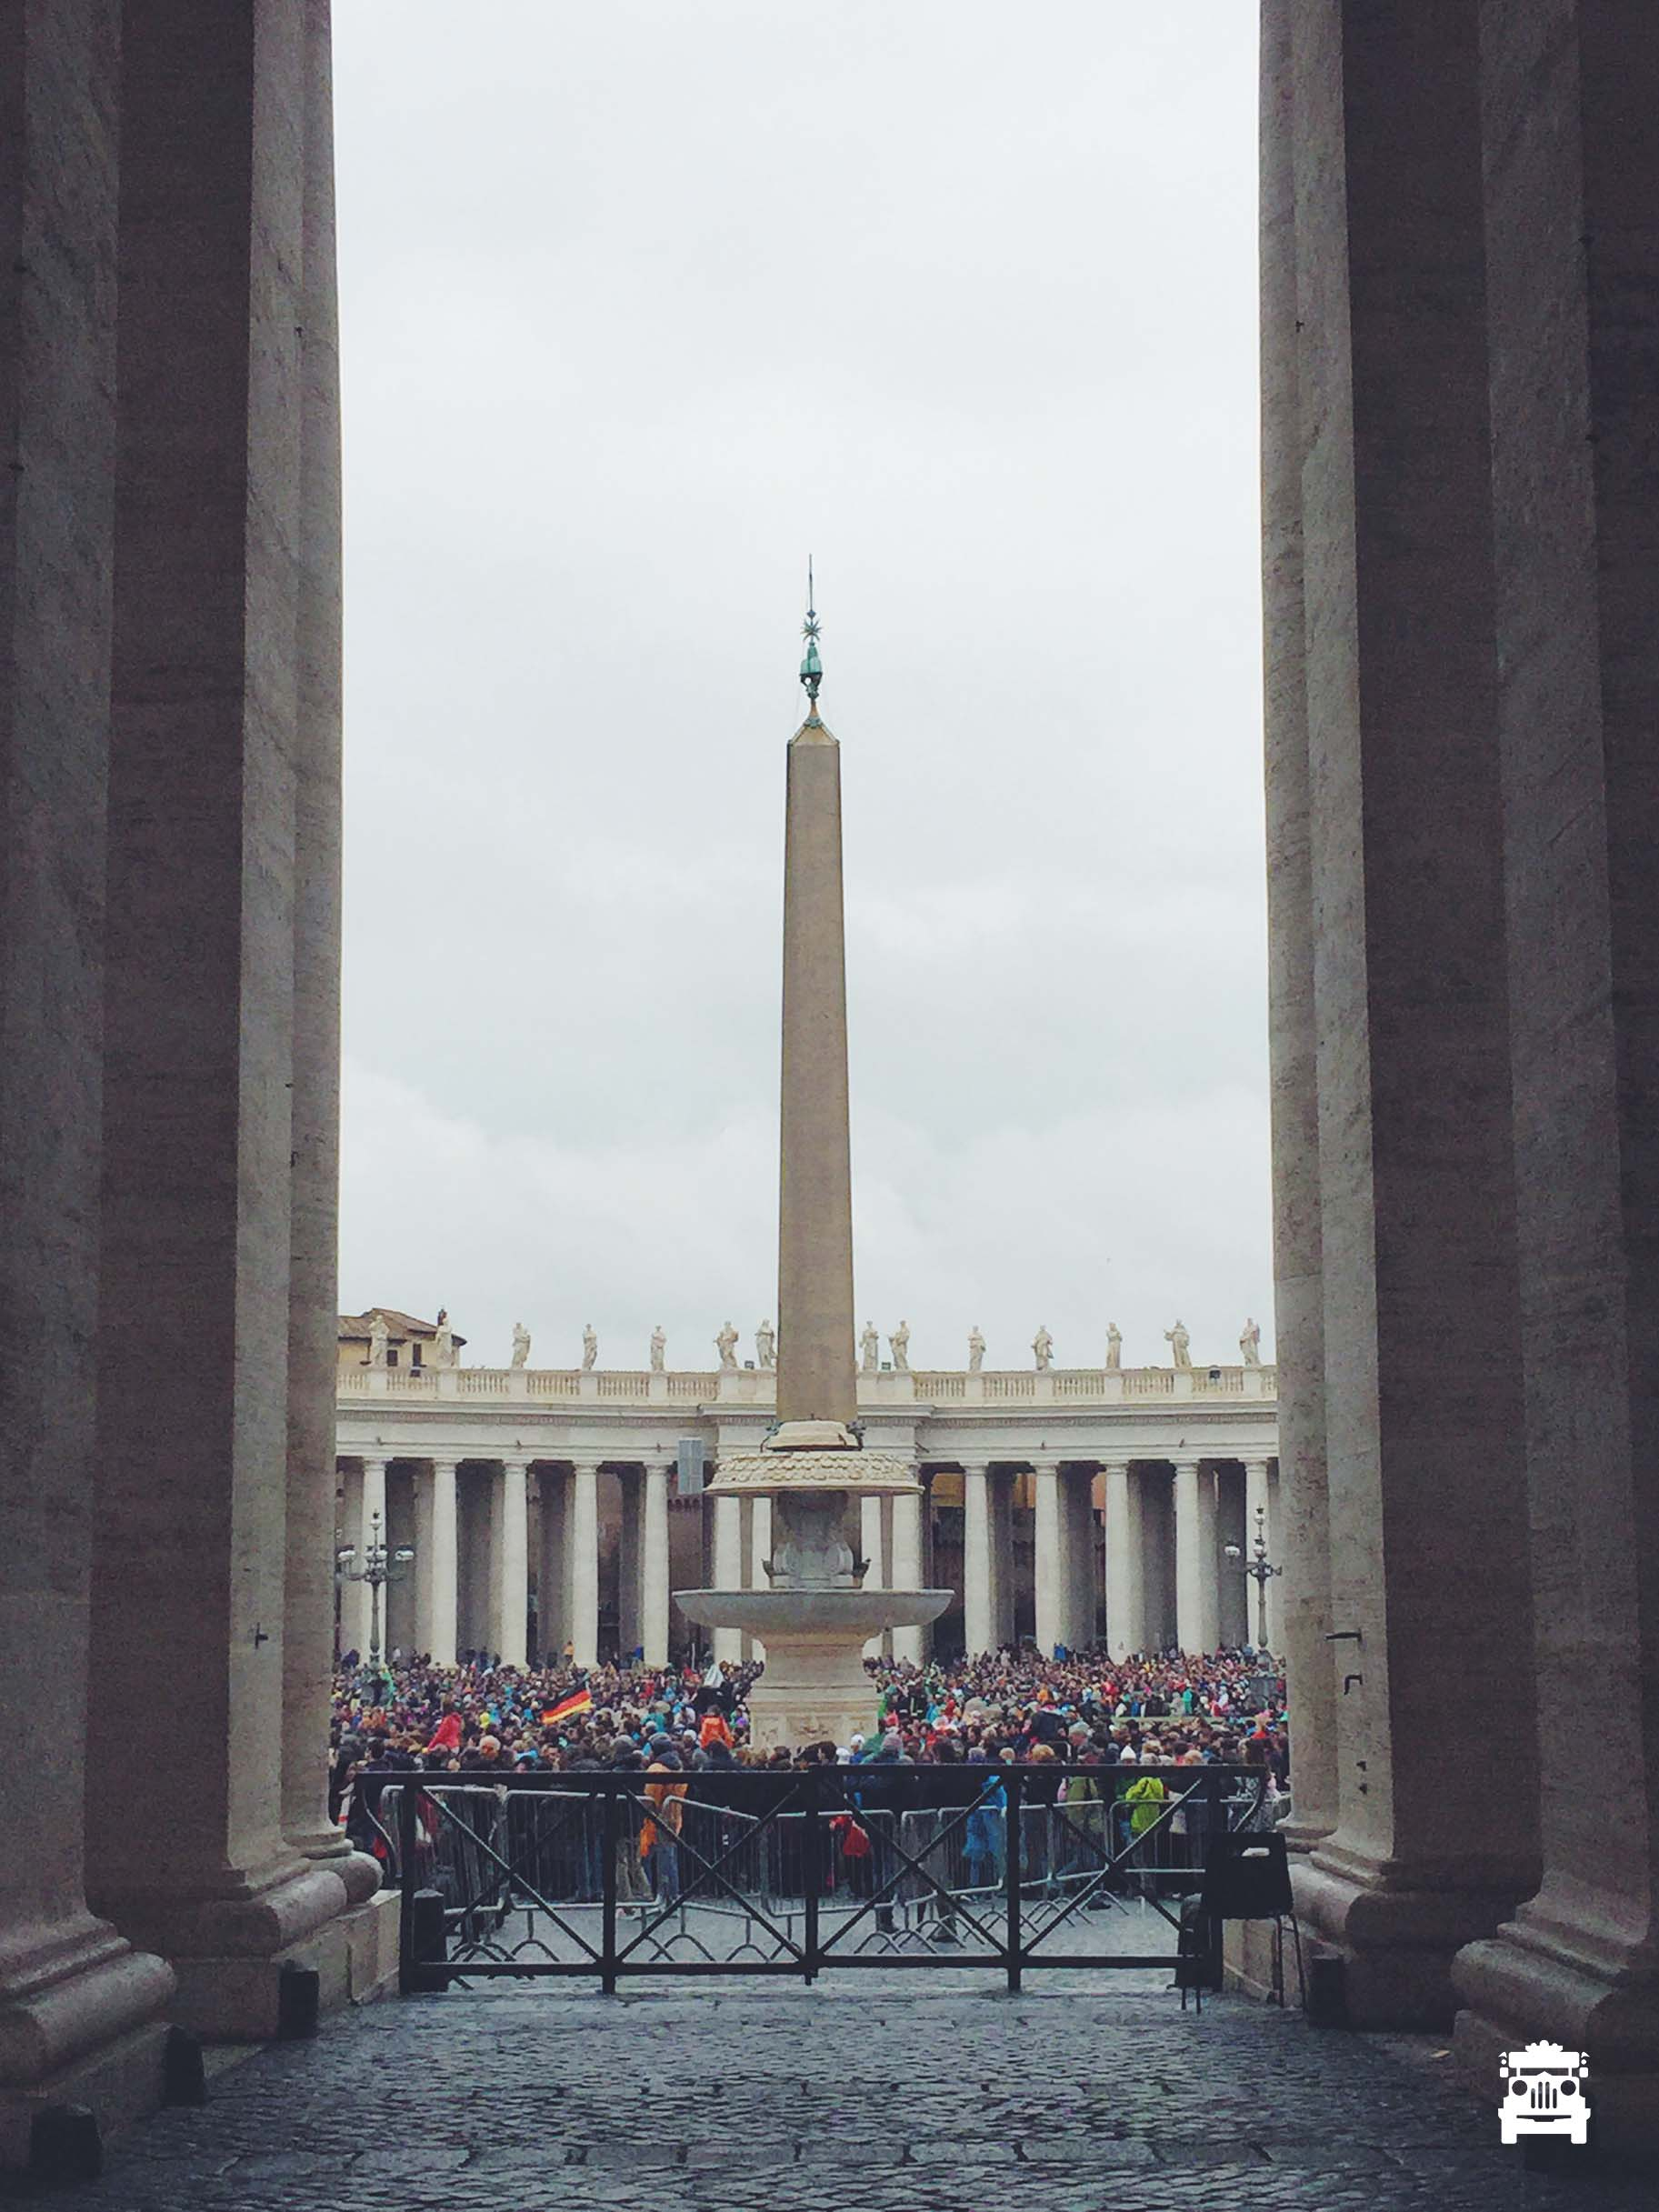 Crowds gathered at St Peter's Square to see the Pope